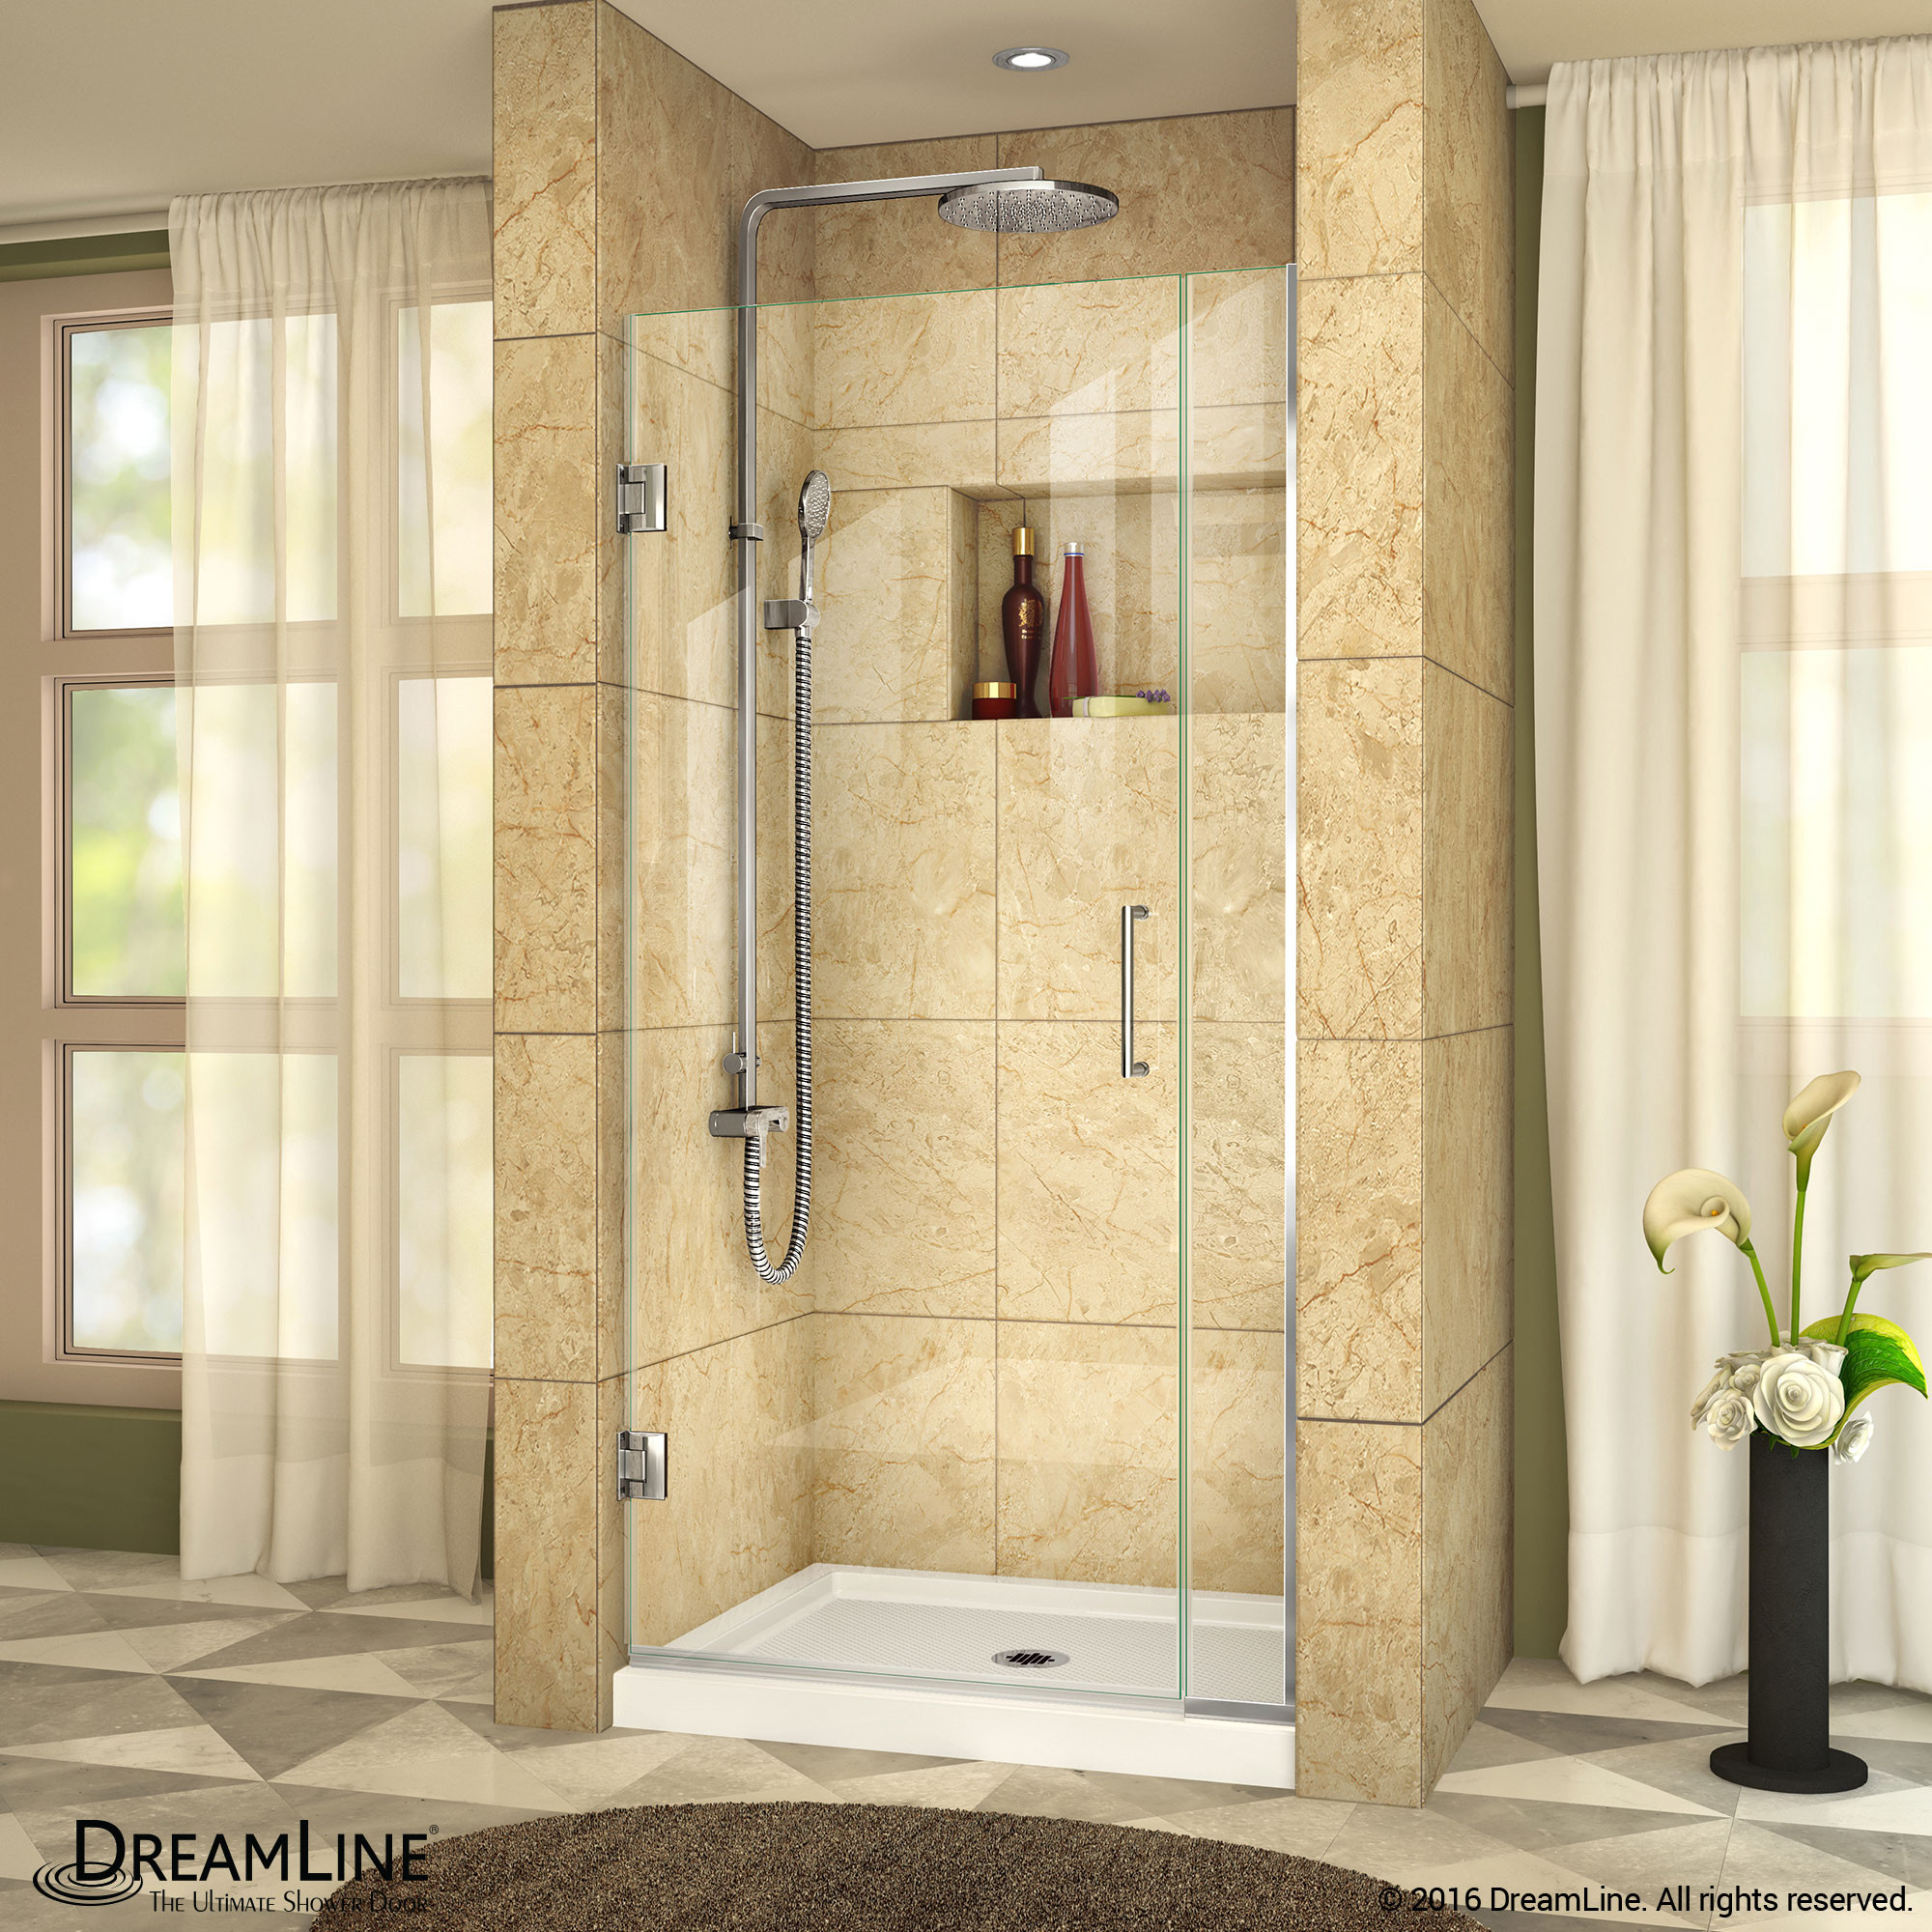 DreamLine SHDR-243357210-01 Unidoor Plus Hinged Shower Door In Chrome Hardware